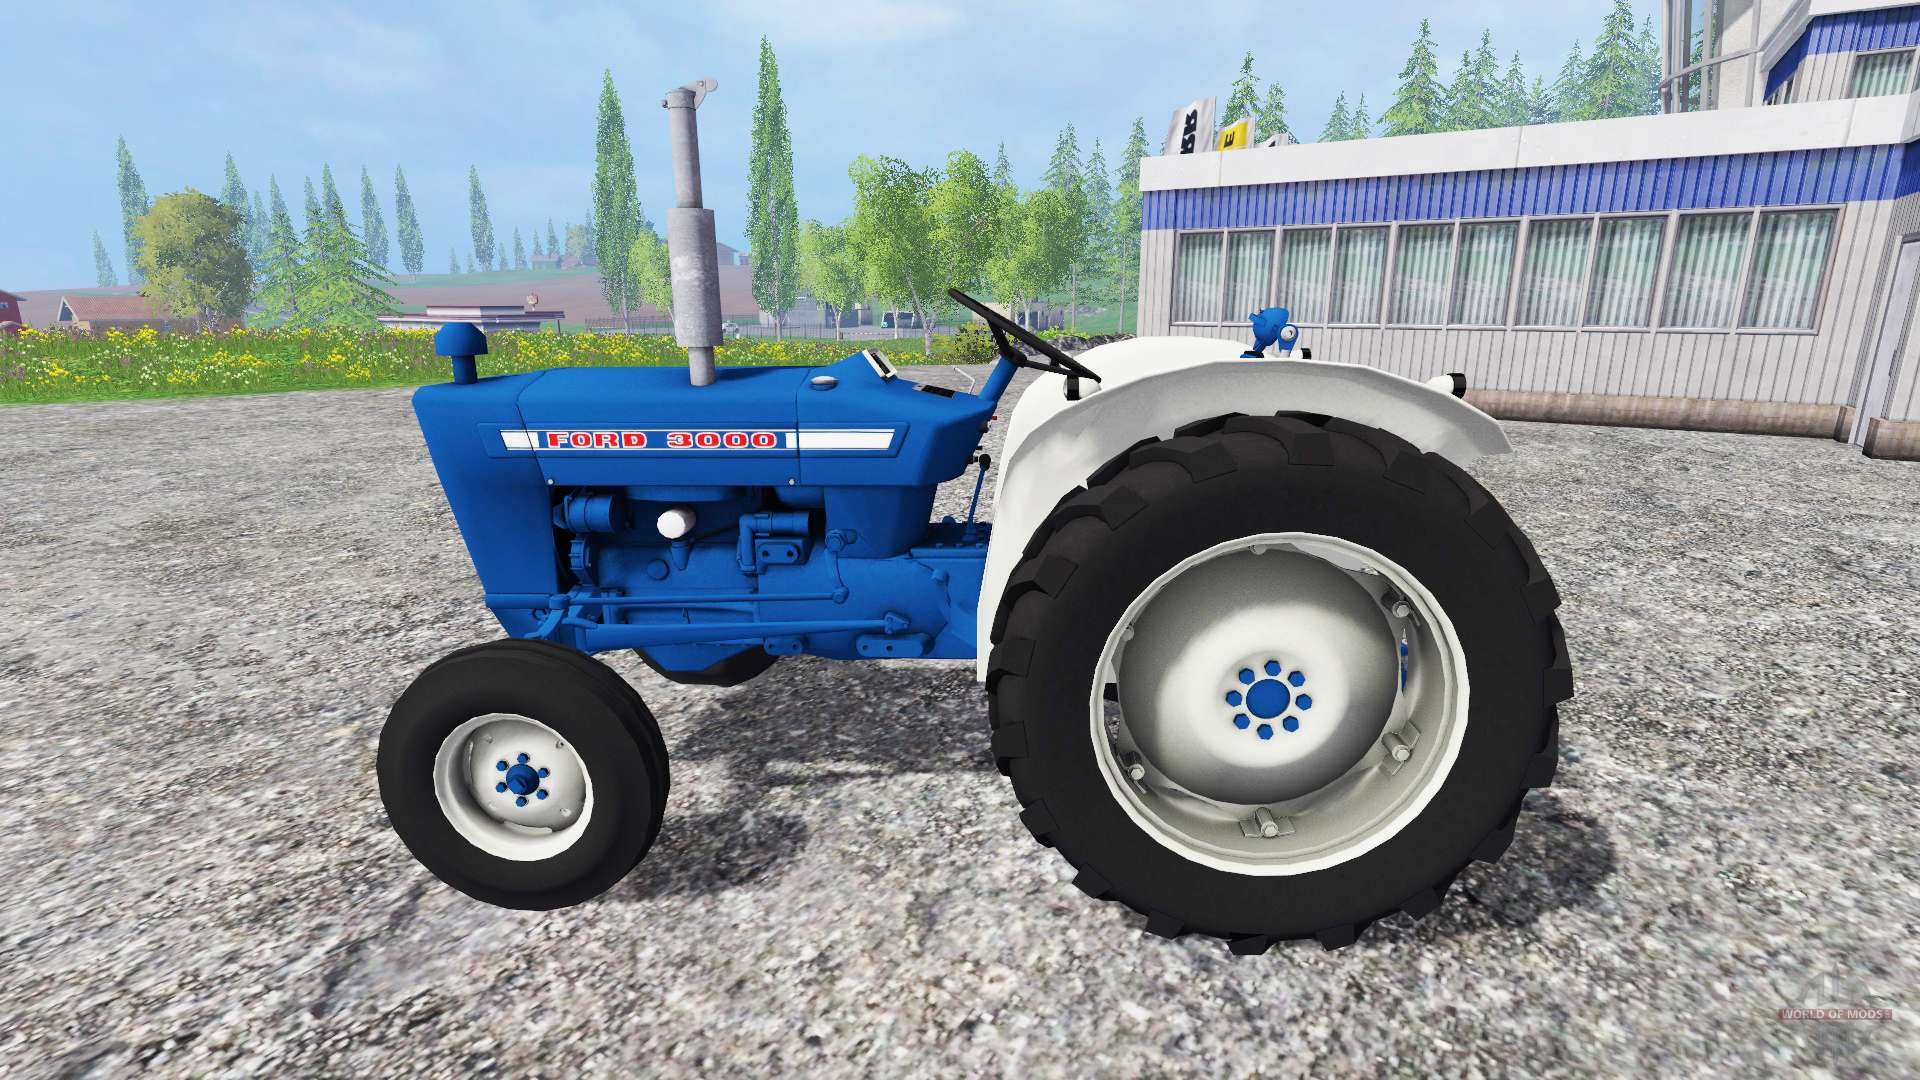 Tractor Fuel Filters Auto Electrical Wiring Diagram 2003 F250 Filter Files Ford 3000 For Farming Simulator 2015